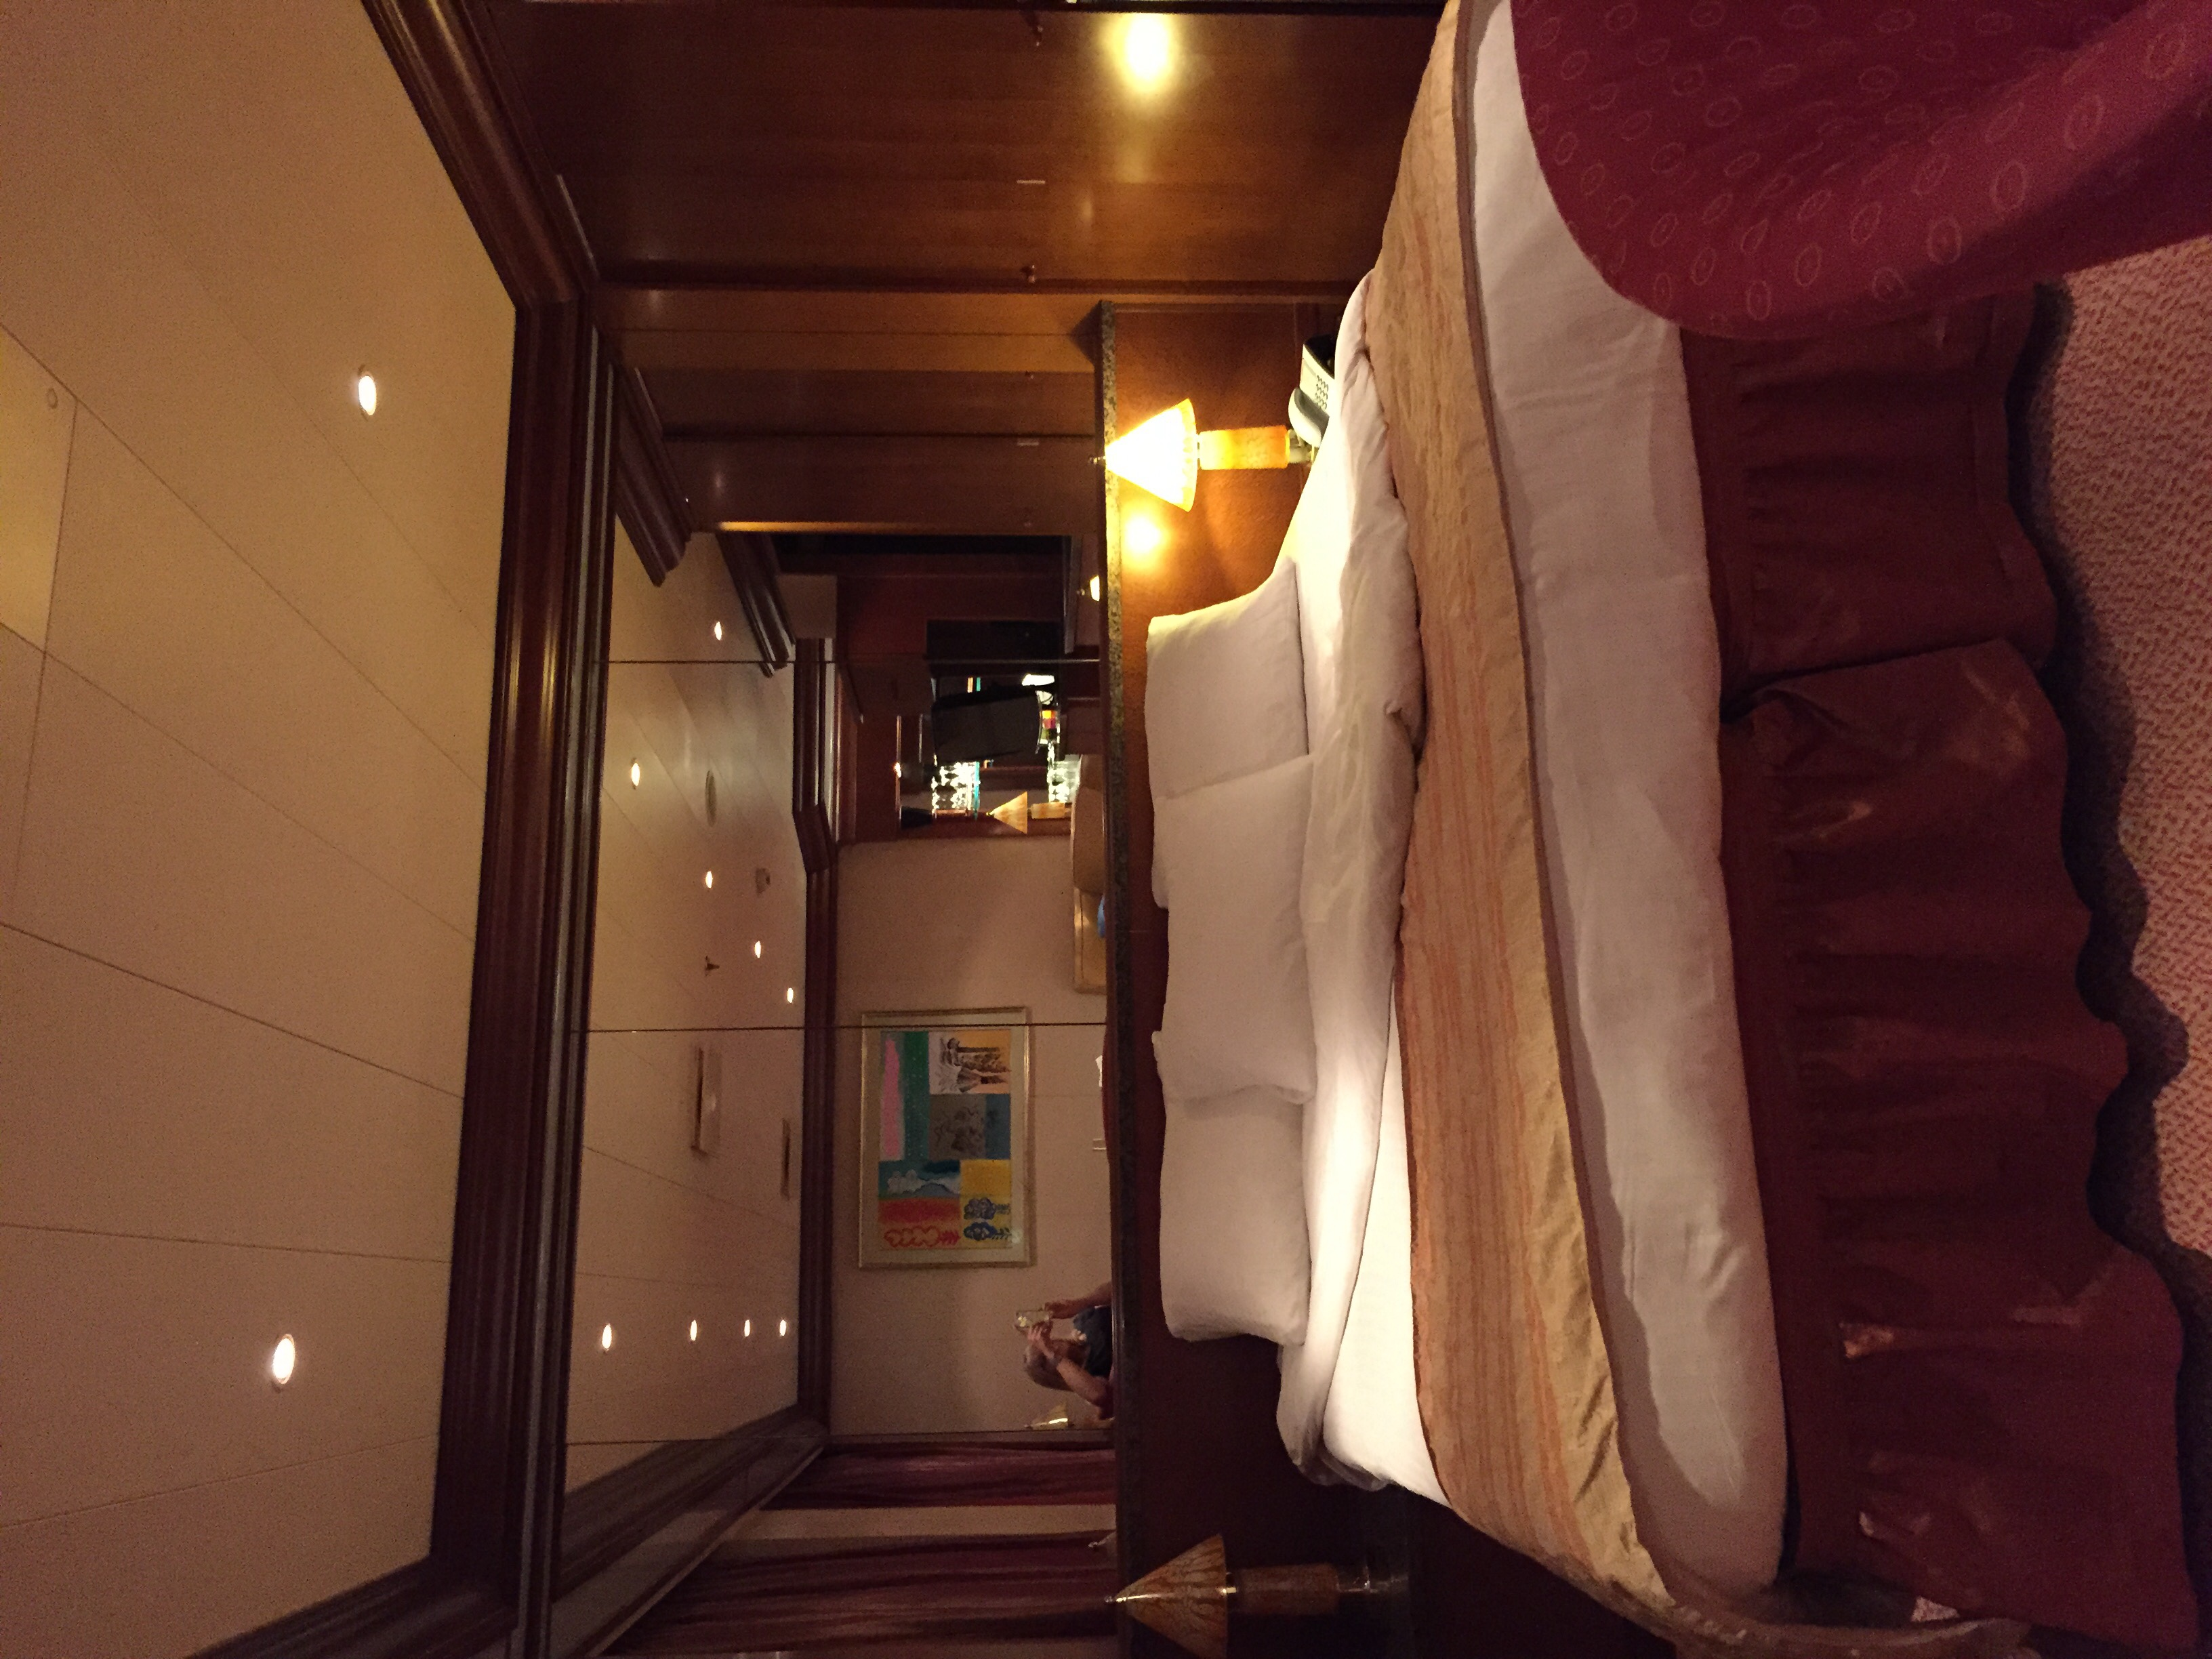 Grand Suite, Cabin Category GR, Carnival Glory